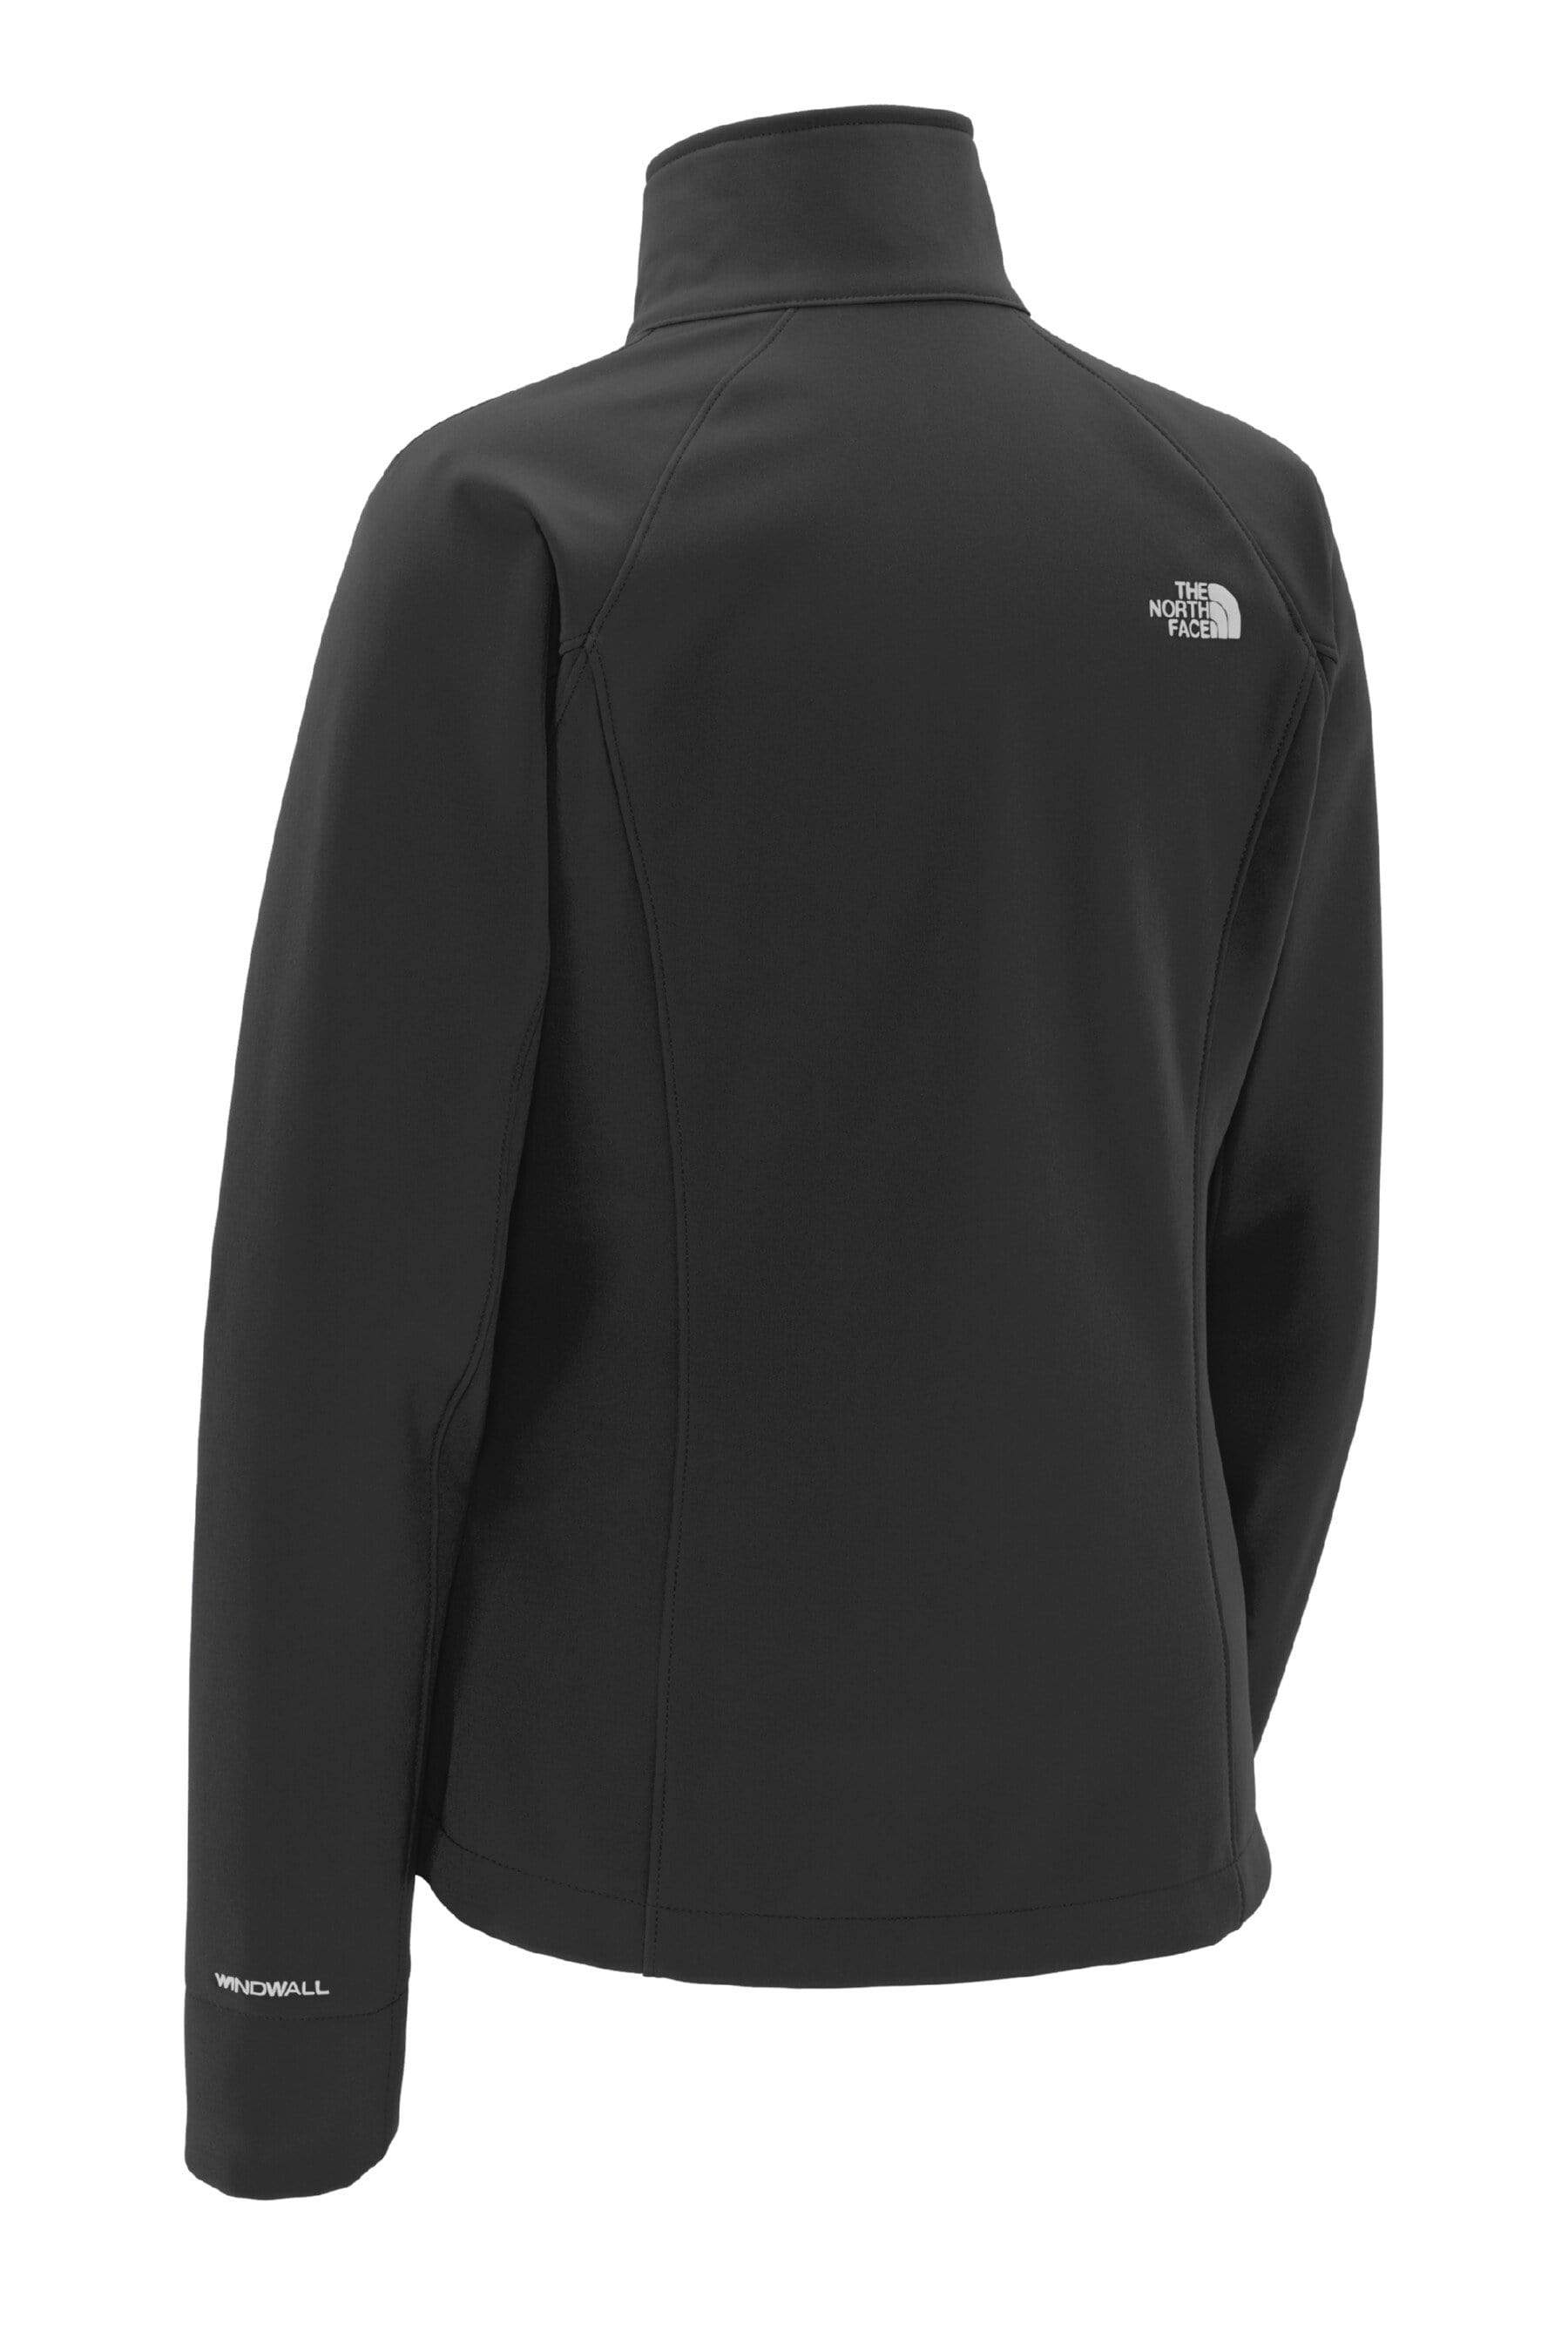 7c3940dd9 The North Face Ladies Apex Barrier Soft Shell Jacket – Clove & Twine